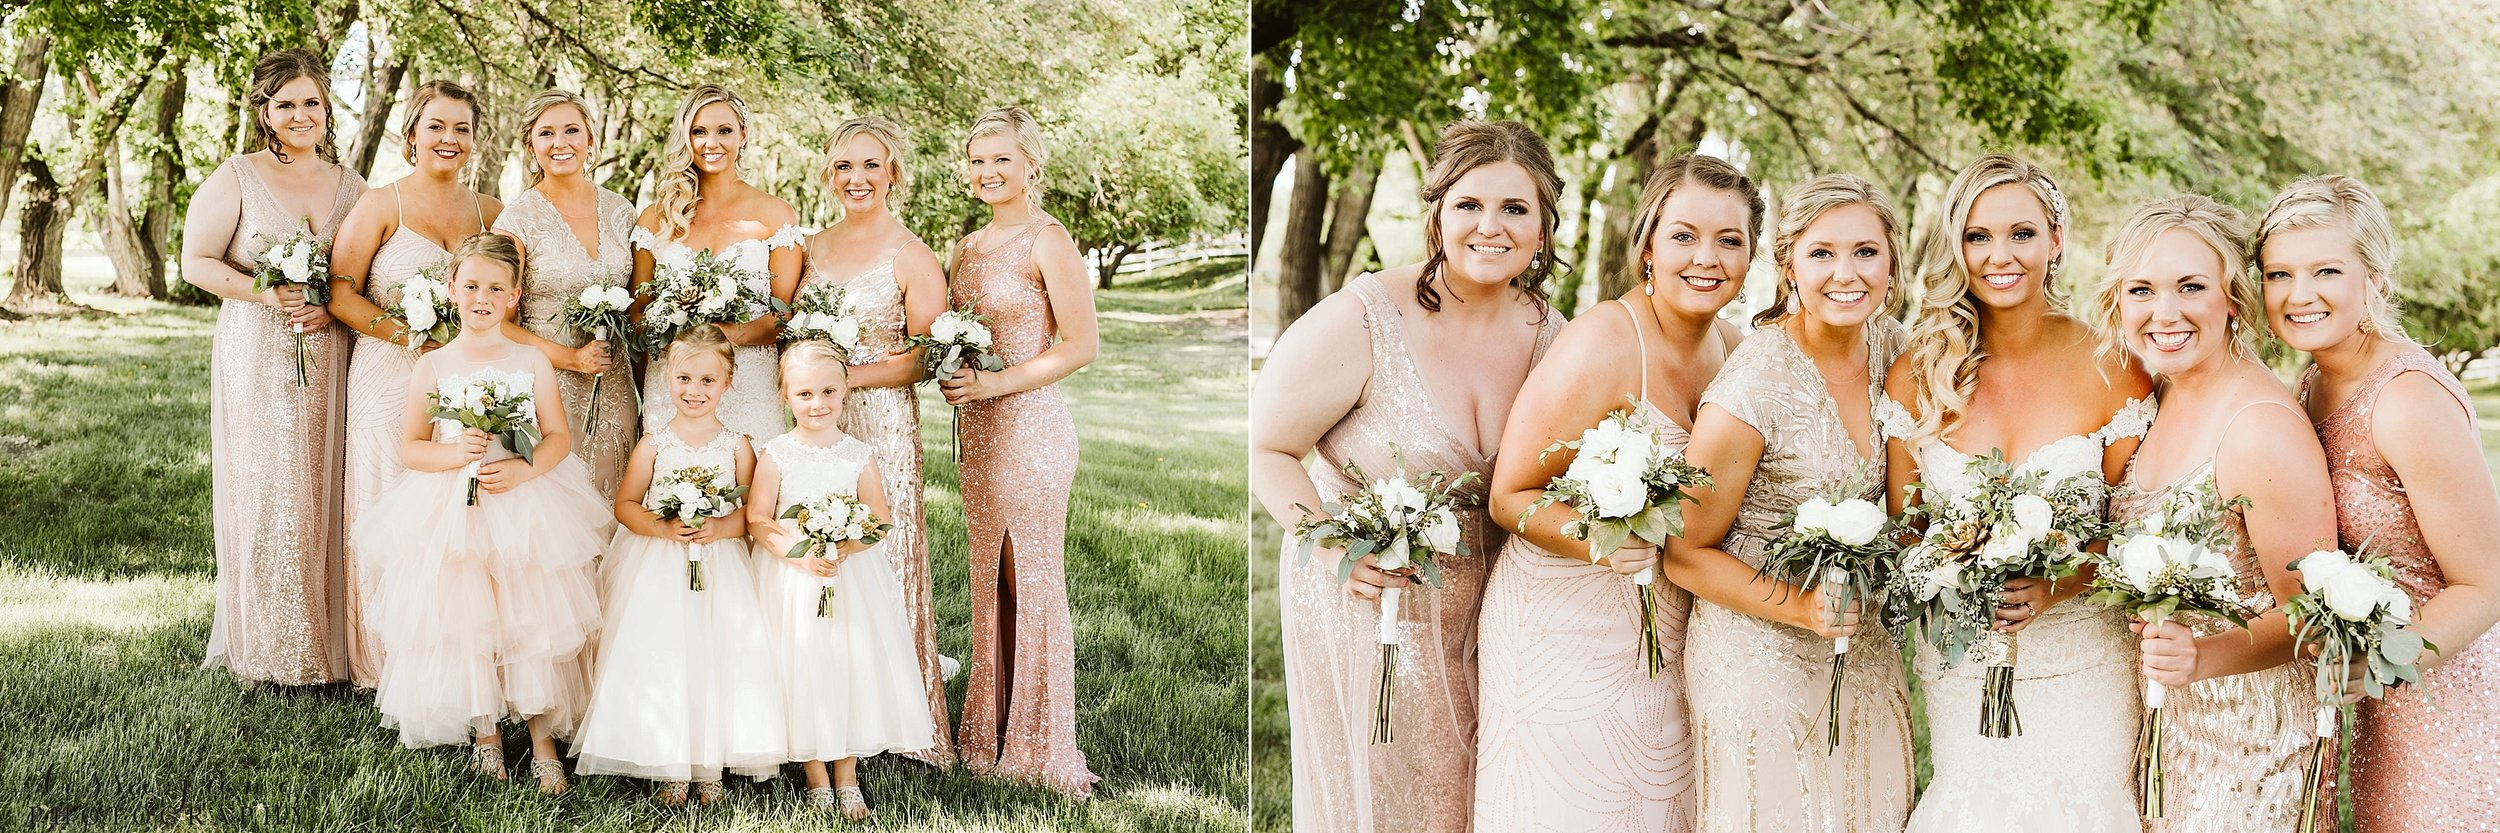 carlos-creek-winery-wedding-alexandria-minnesota-glam-elegant-floral-50.jpg